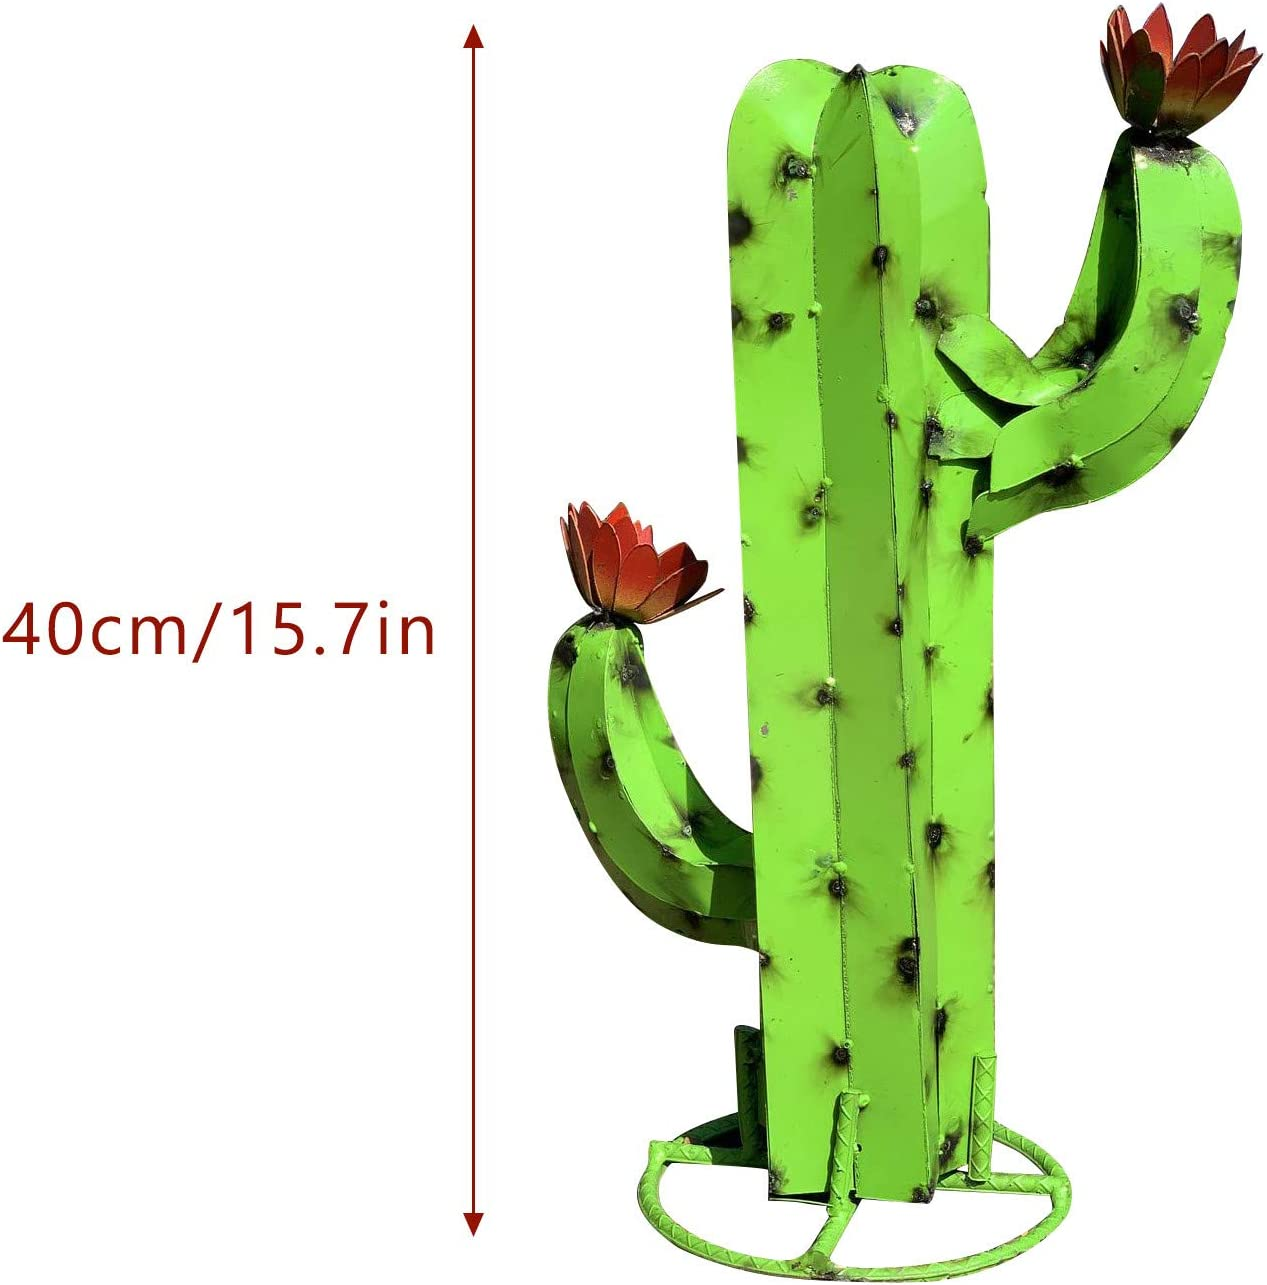 DIY Metal Cactus Plant,Rustic Hand Painted Metal Cactus,Garden Yard Art Decoration Statue Home Decor for Yard Stakes,Garden Figurines,Outdoor Patio Blue liufeng Mexican Cactus Rustic Sculpture